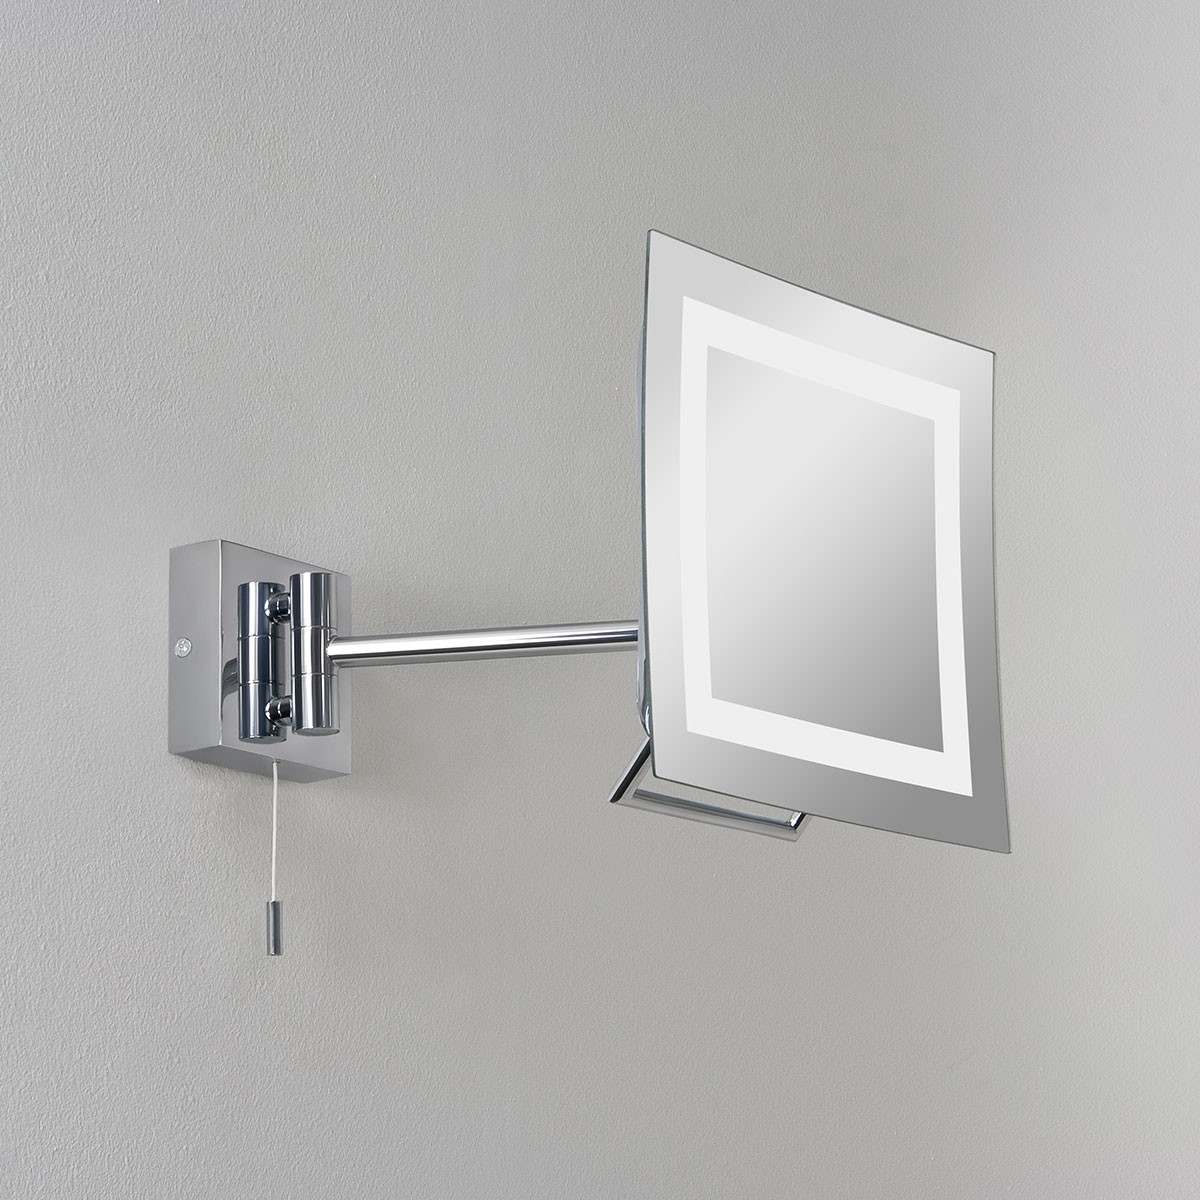 Astro niro polished chrome bathroom mirror light at uk for Bathroom mirror with lights